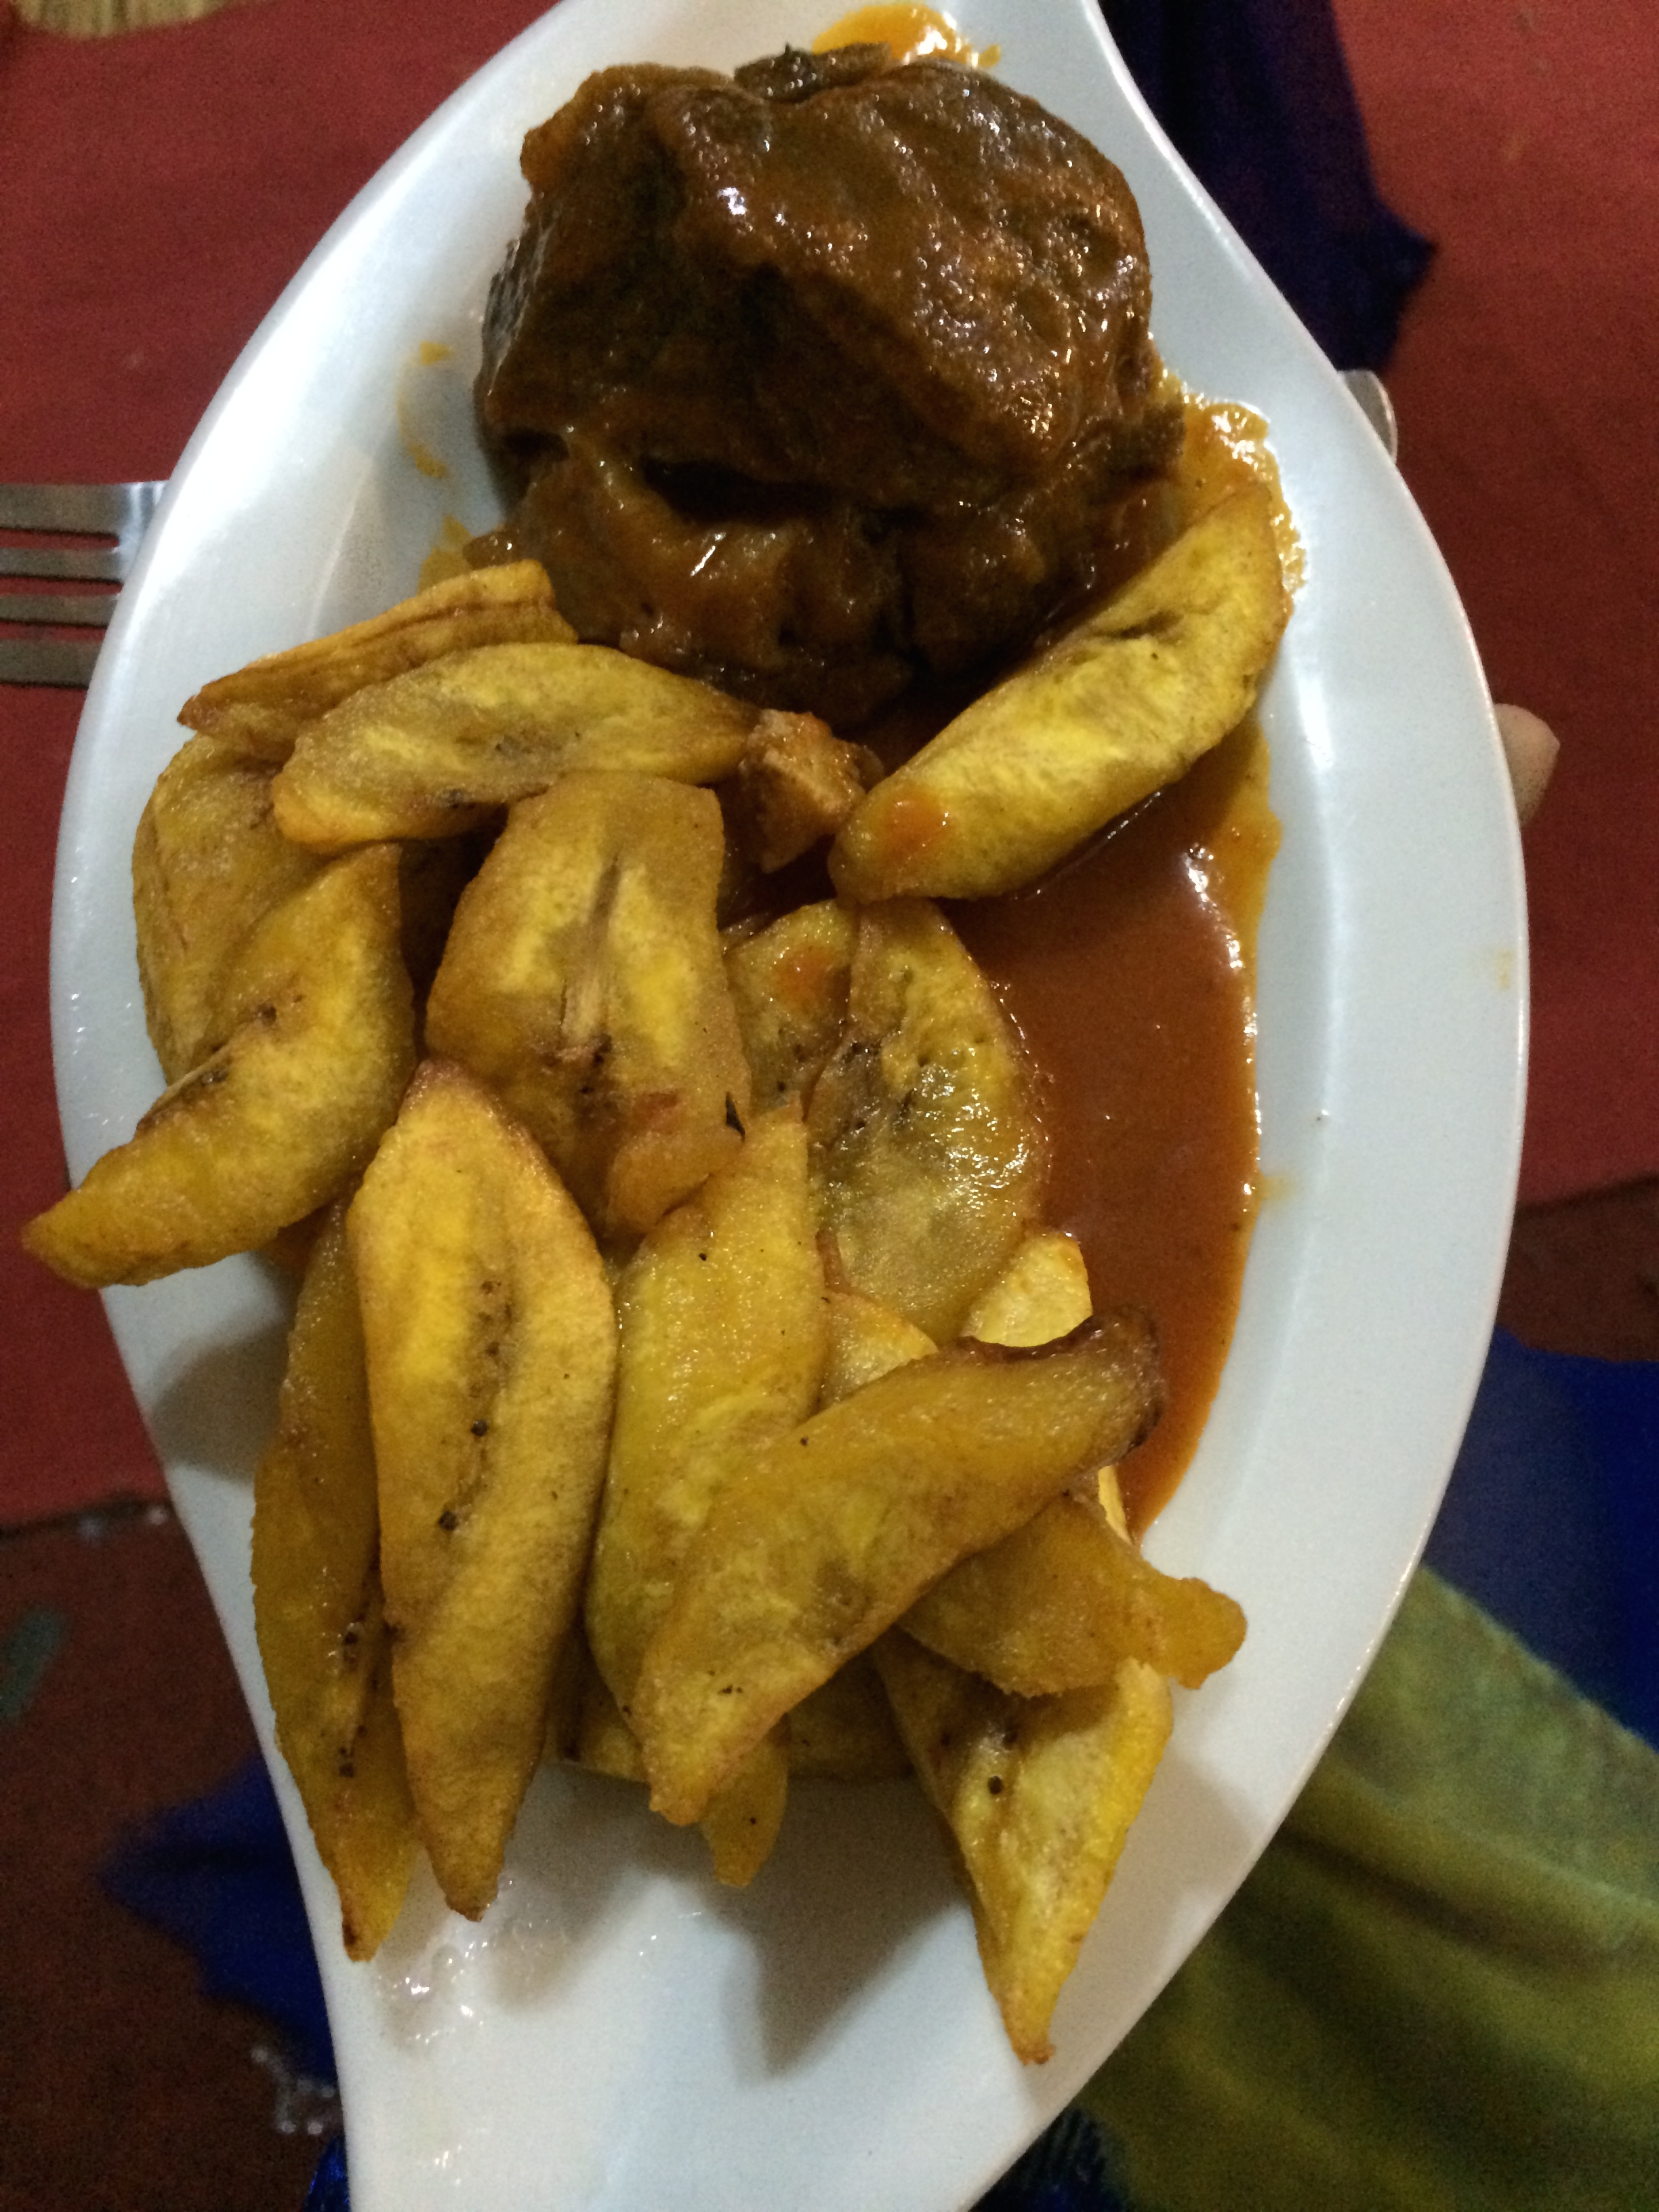 Food - Plaintain and Liver (Don't knock it until you try it)